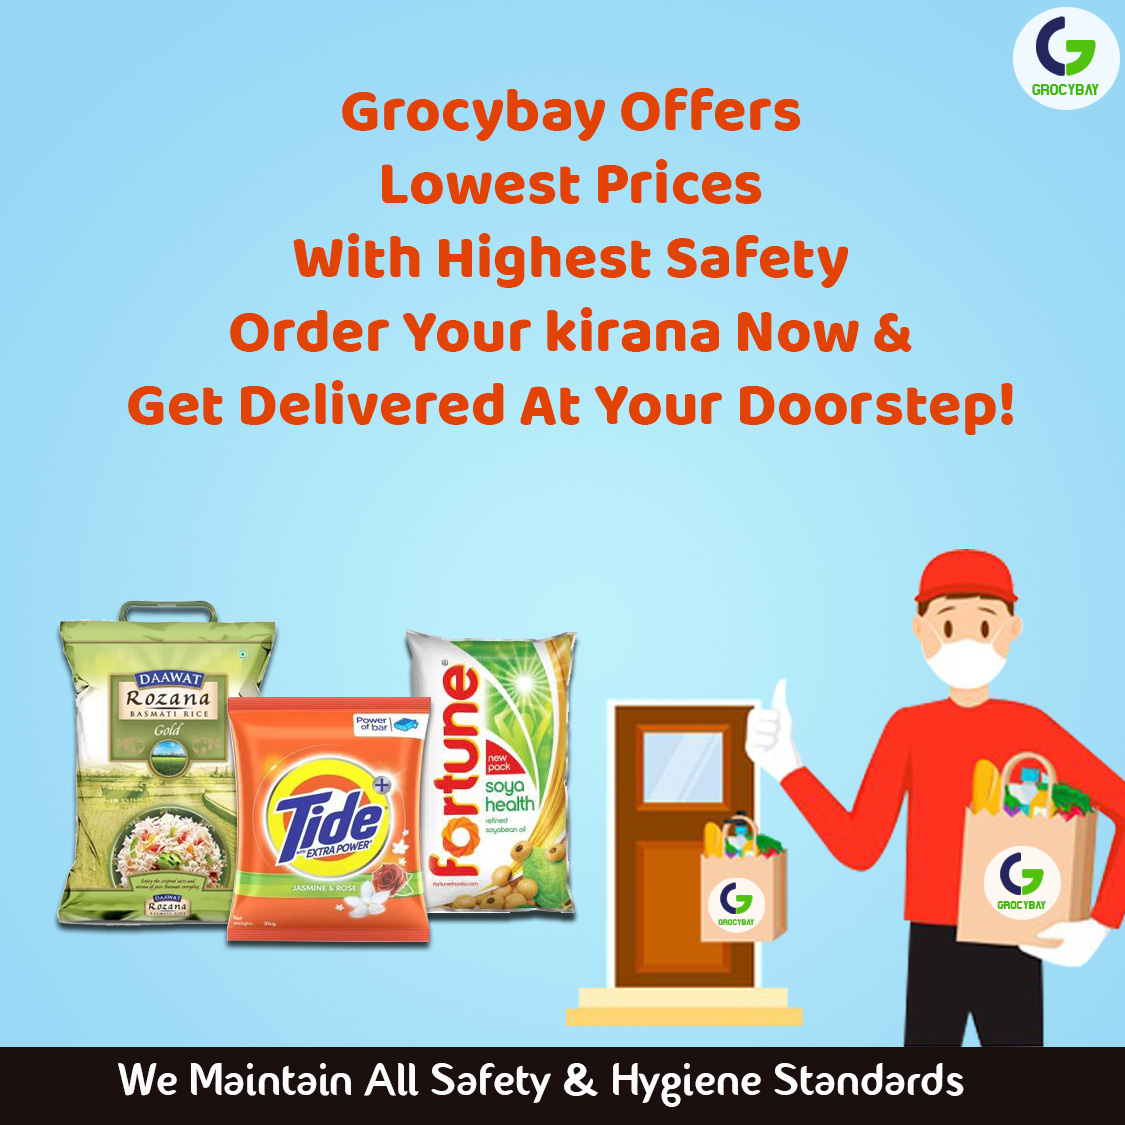 Order your kirana from Grocybay and get delivered at your doorstep 🏡  We maintain proper hygiene and safety☺️ https://t.co/nh2YtbxO8V  #grocybay #onlinestore #onlinegrocery #onlinegrocerystore #groceryshopping #grocerystore #onlinegroceryshopping #doorstepdelivery https://t.co/7OIfuklVGq